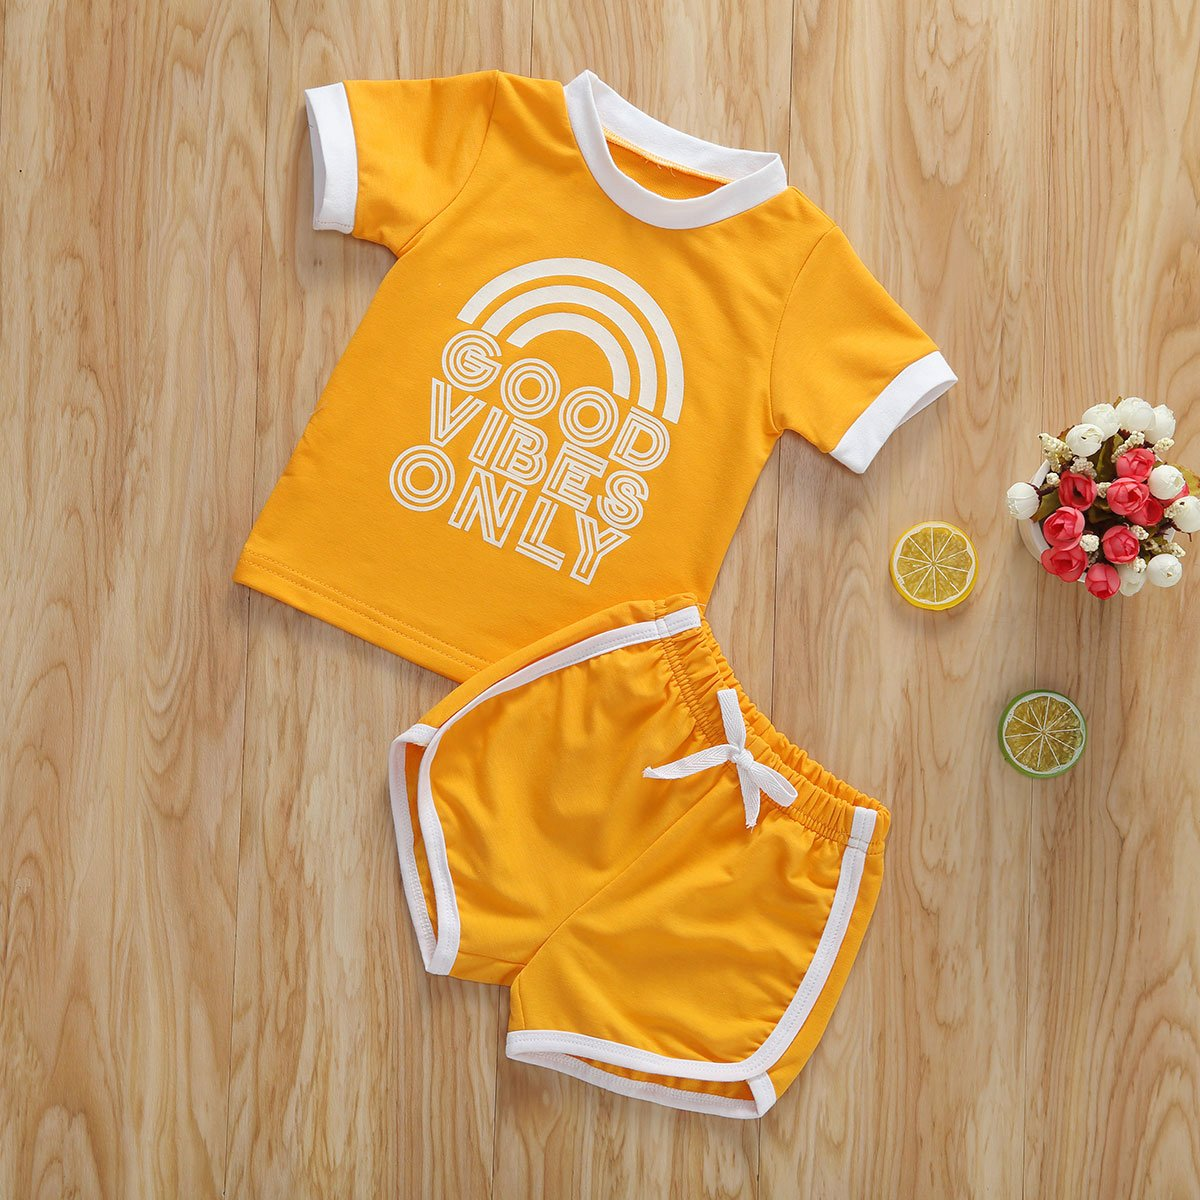 0-4 Years 2pcs Summer Baby Girls Clothes Sets Causal Letter Printed Short Sleeve T Shirts Tops+Shorts Set - OUTLATTE